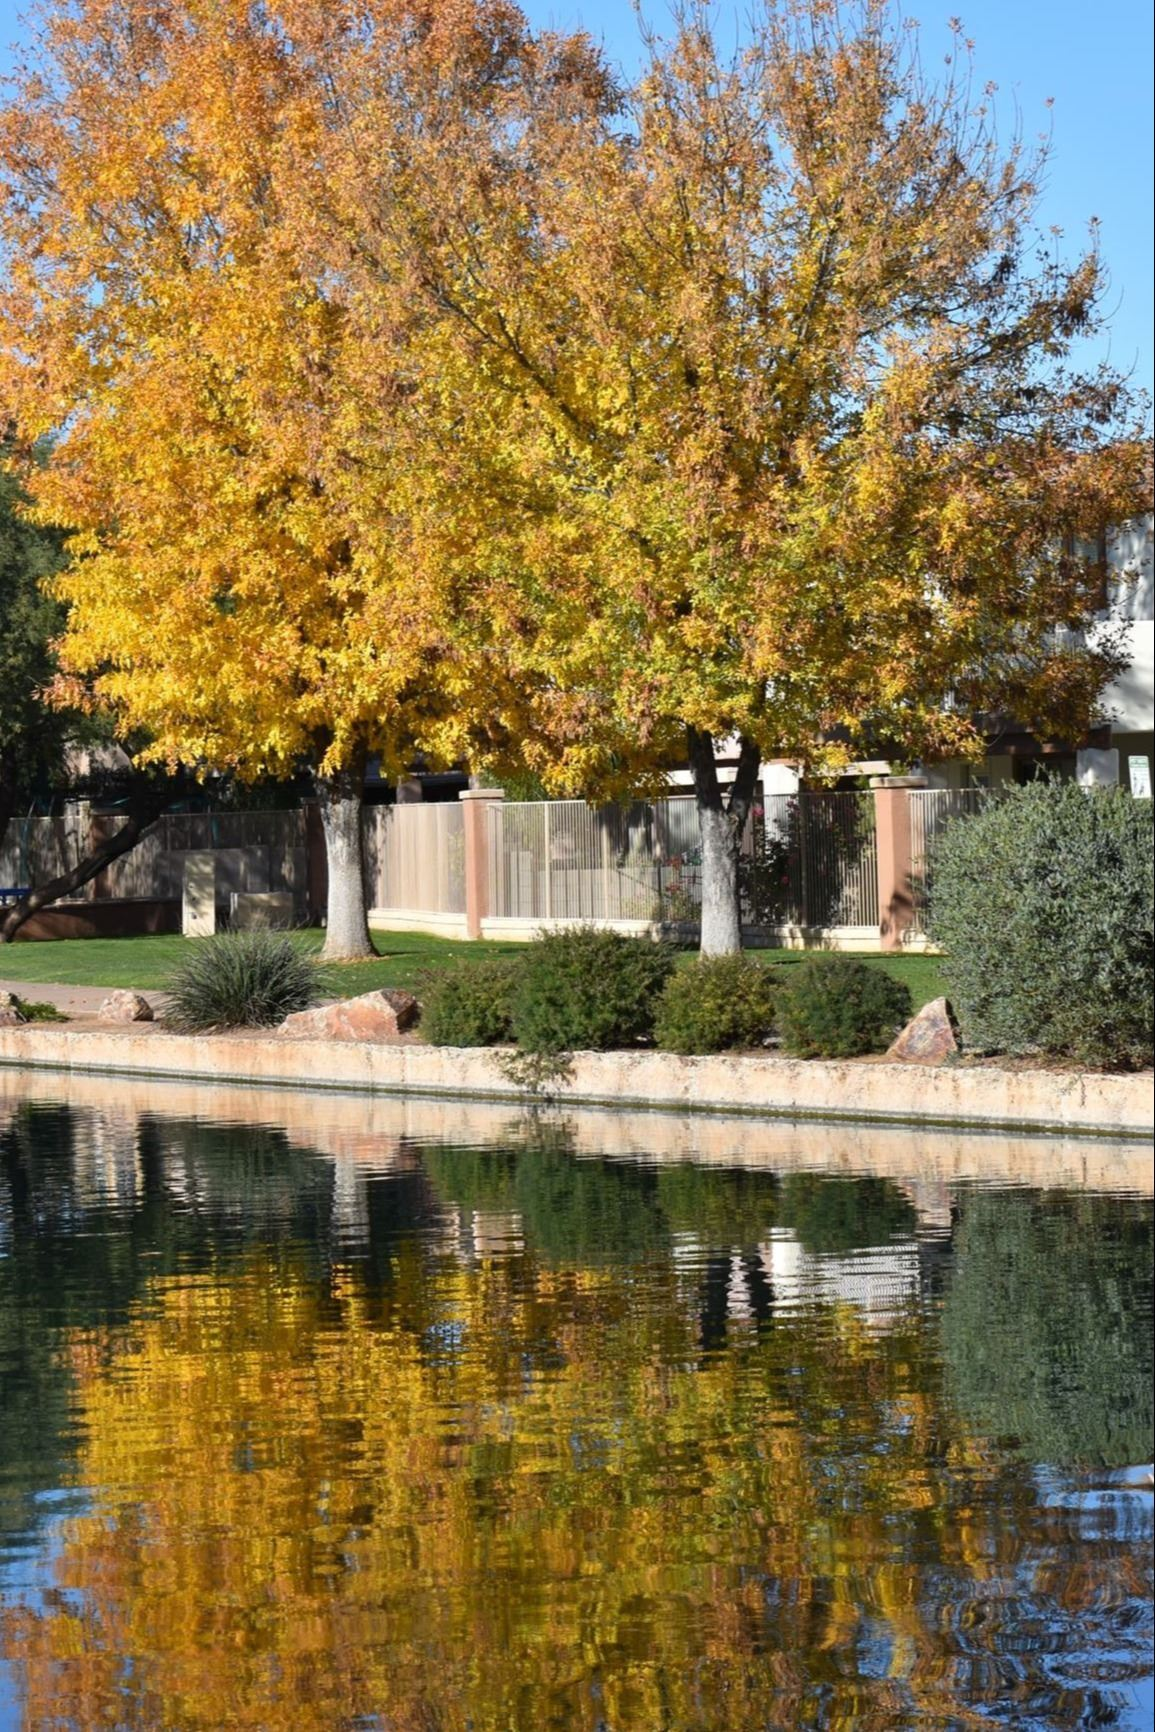 Tree with yellow leaves at Sahuarita Lake Park